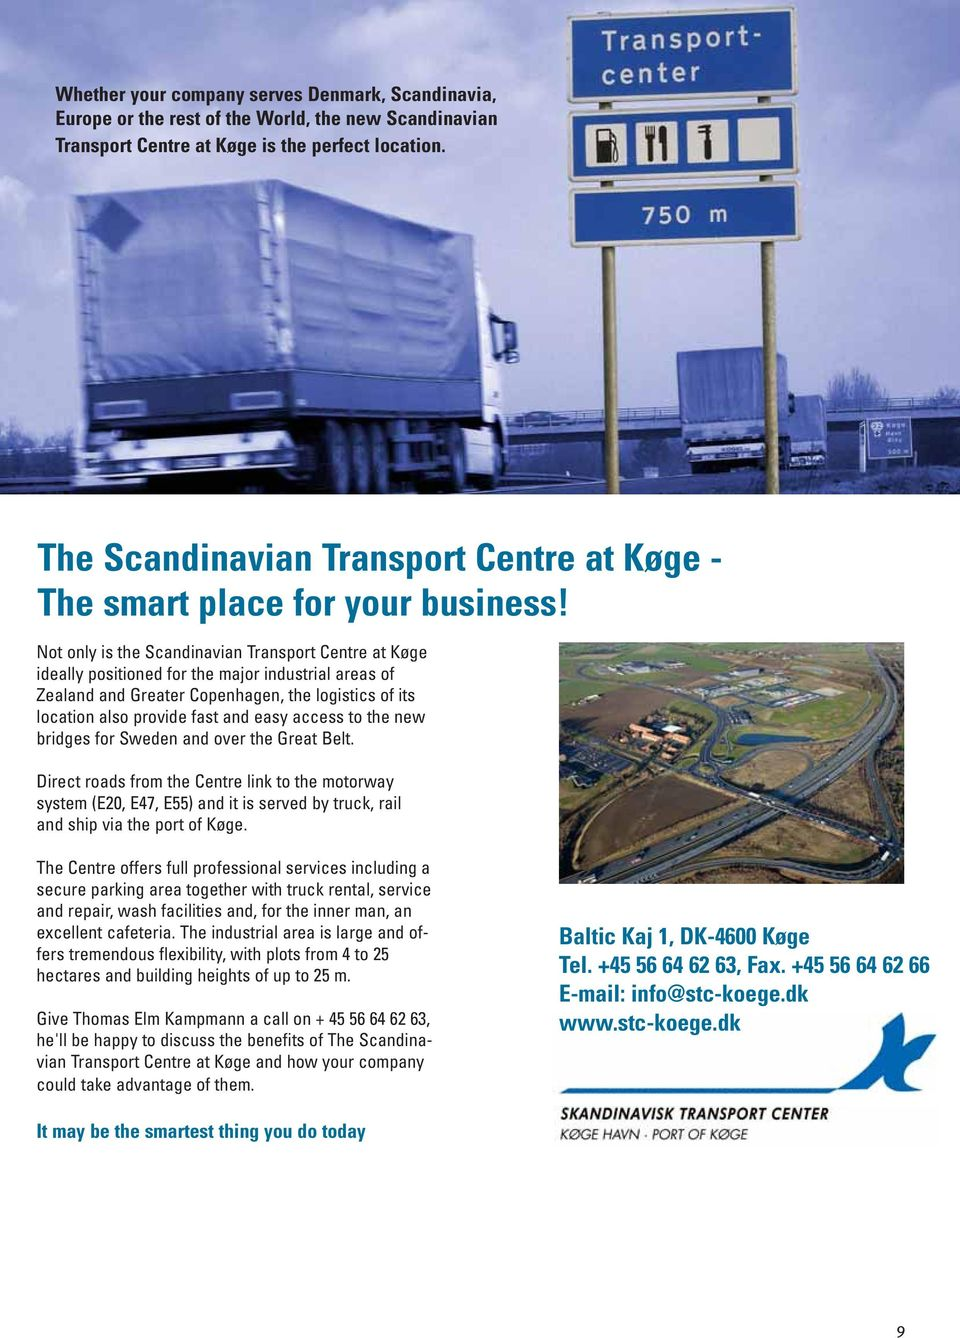 Not only is the Scandinavian Transport Centre at Køge ideally positioned for the major industrial areas of Zealand and Greater Copenhagen, the logistics of its location also provide fast and easy